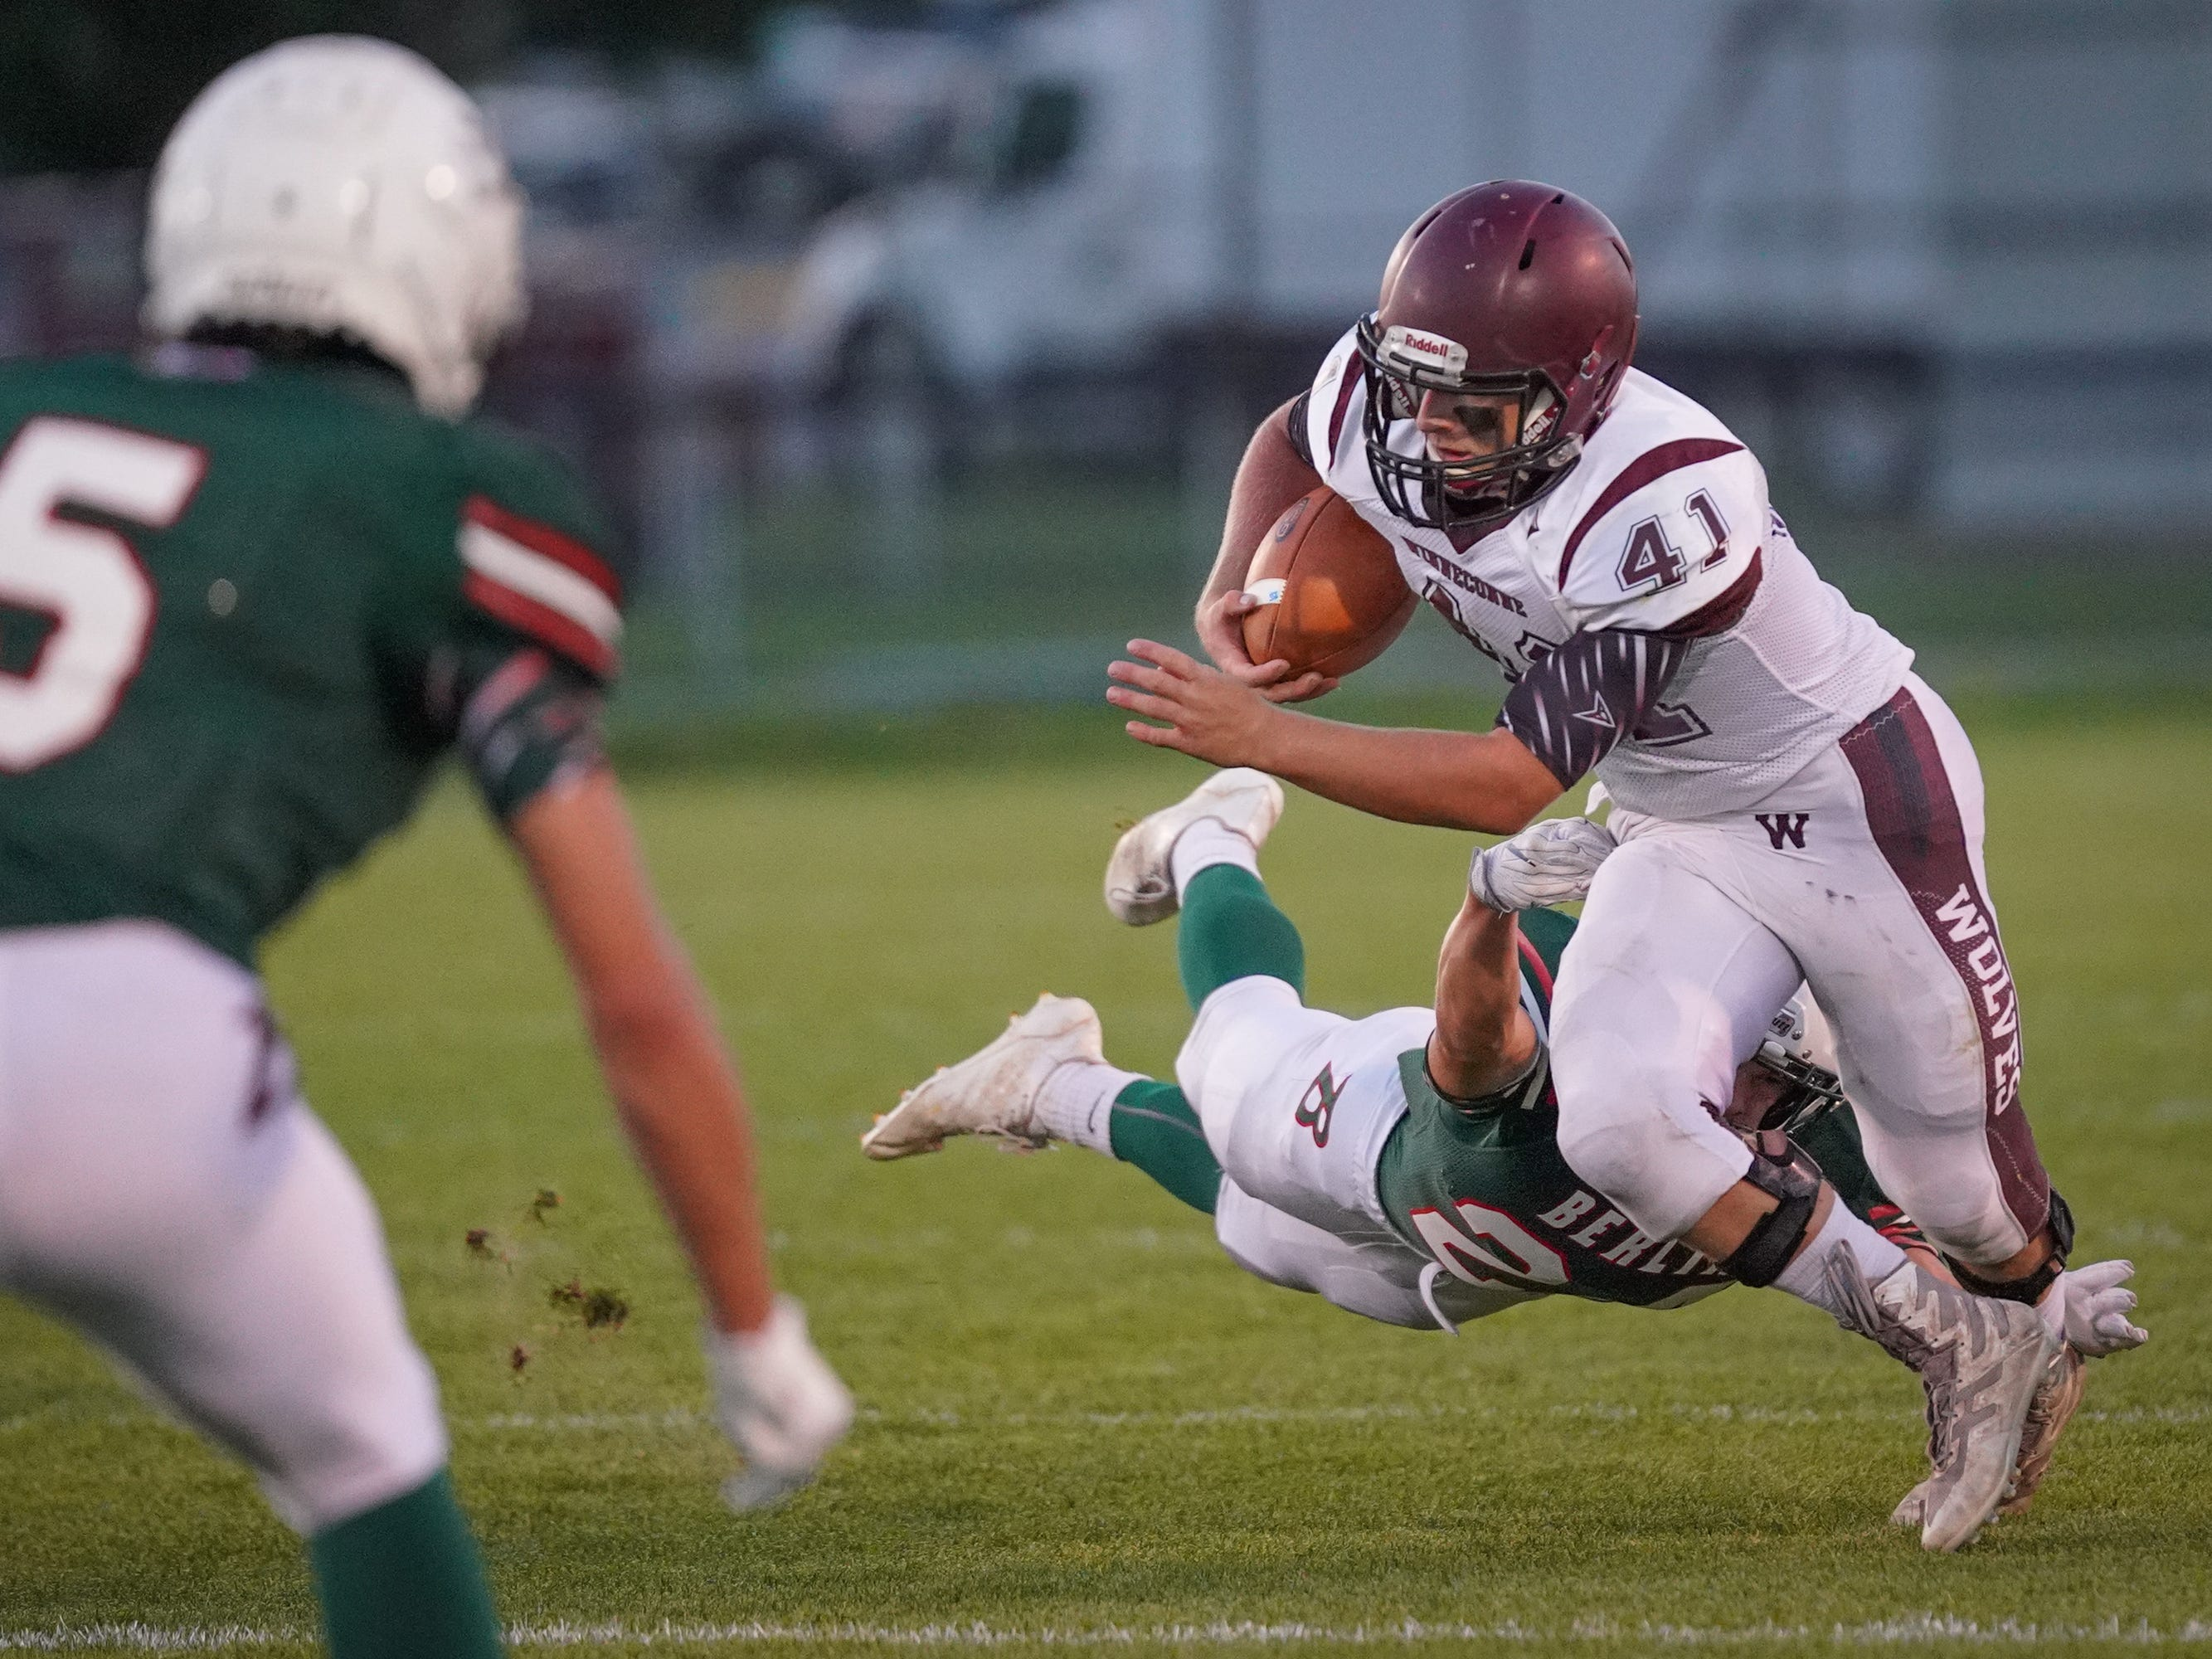 Wyatt Busching (41) of Winneconne gets tackled by Aidan Schilling (24) of Berlin. The Berlin Indians hosted the Winneconne Wolves in an East Central Conference matchup Friday evening, September 14, 2018.